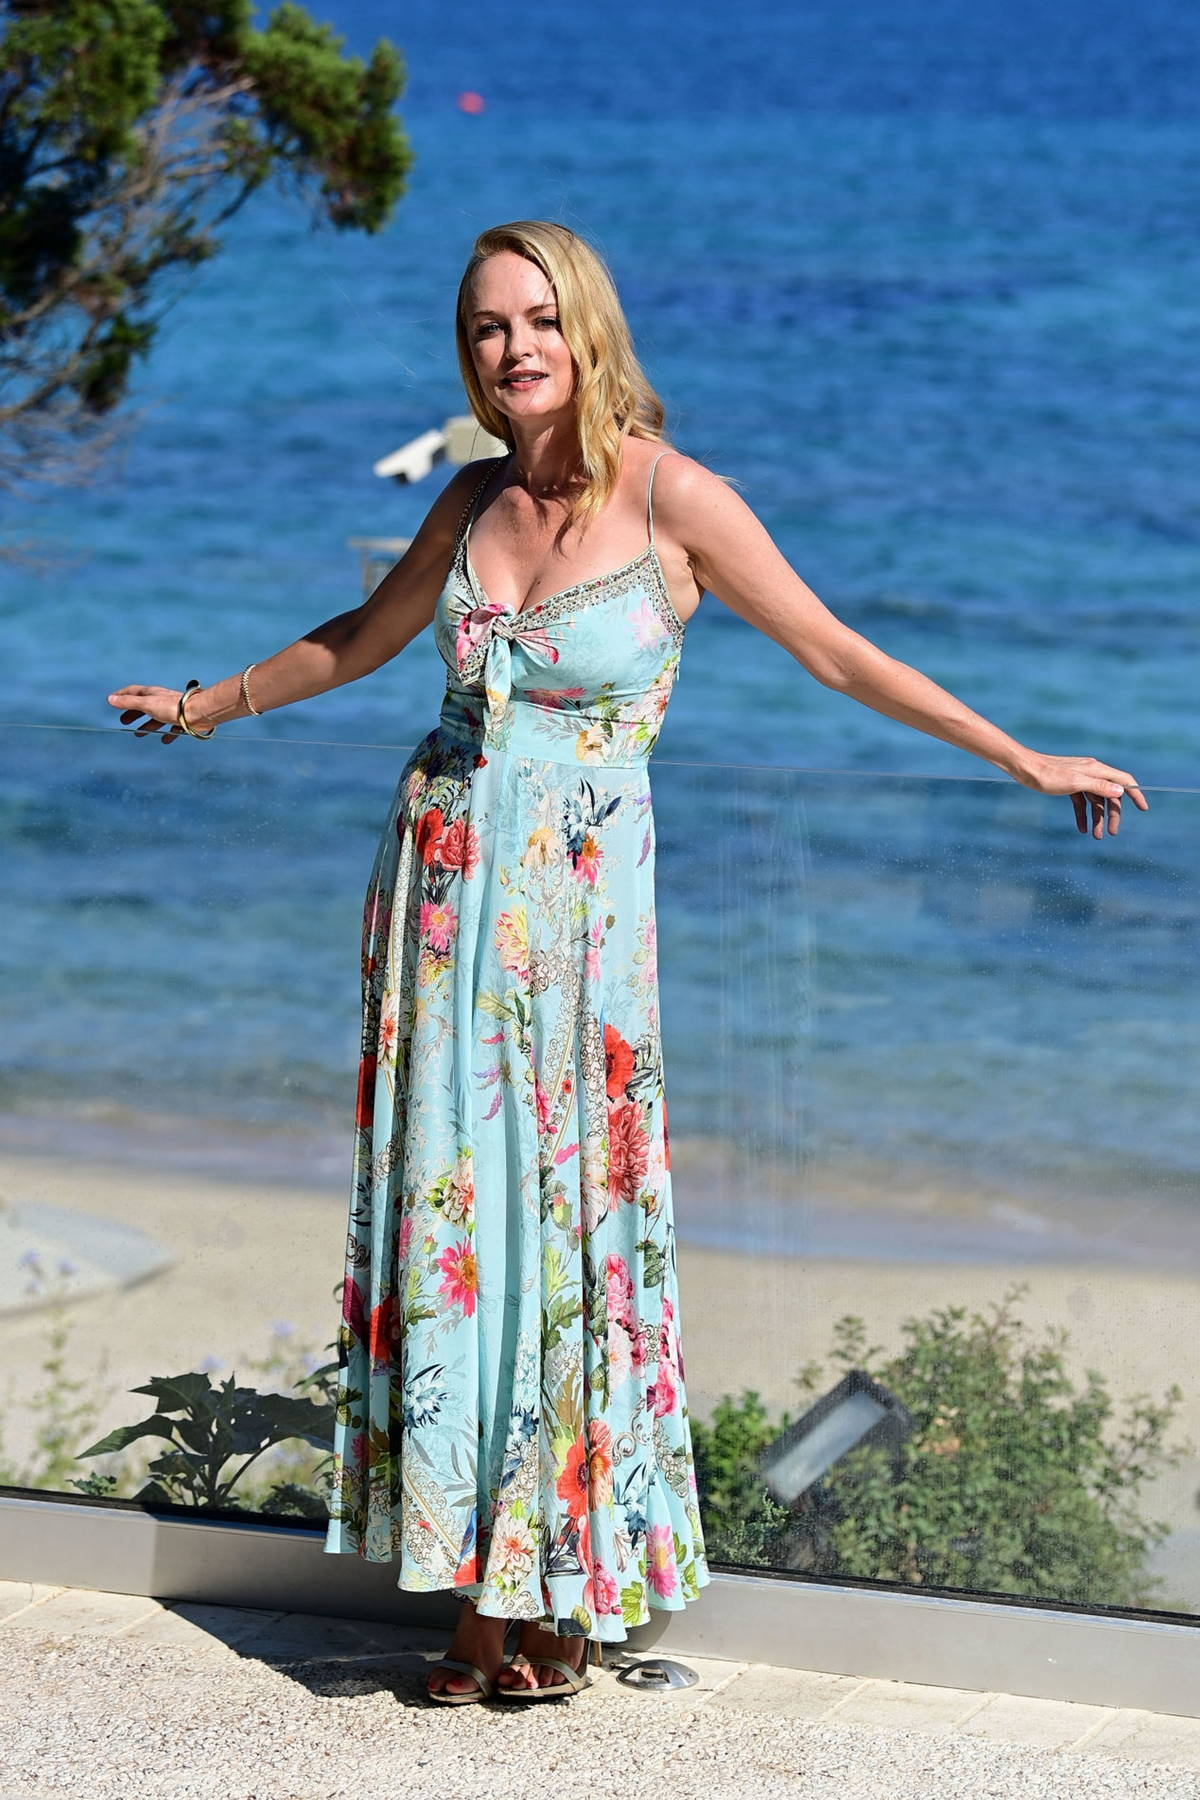 Heather Graham attends the Filming Italy Festival, Day 2 at Forte Village Resort in Santa Margherita di Pula, Italy